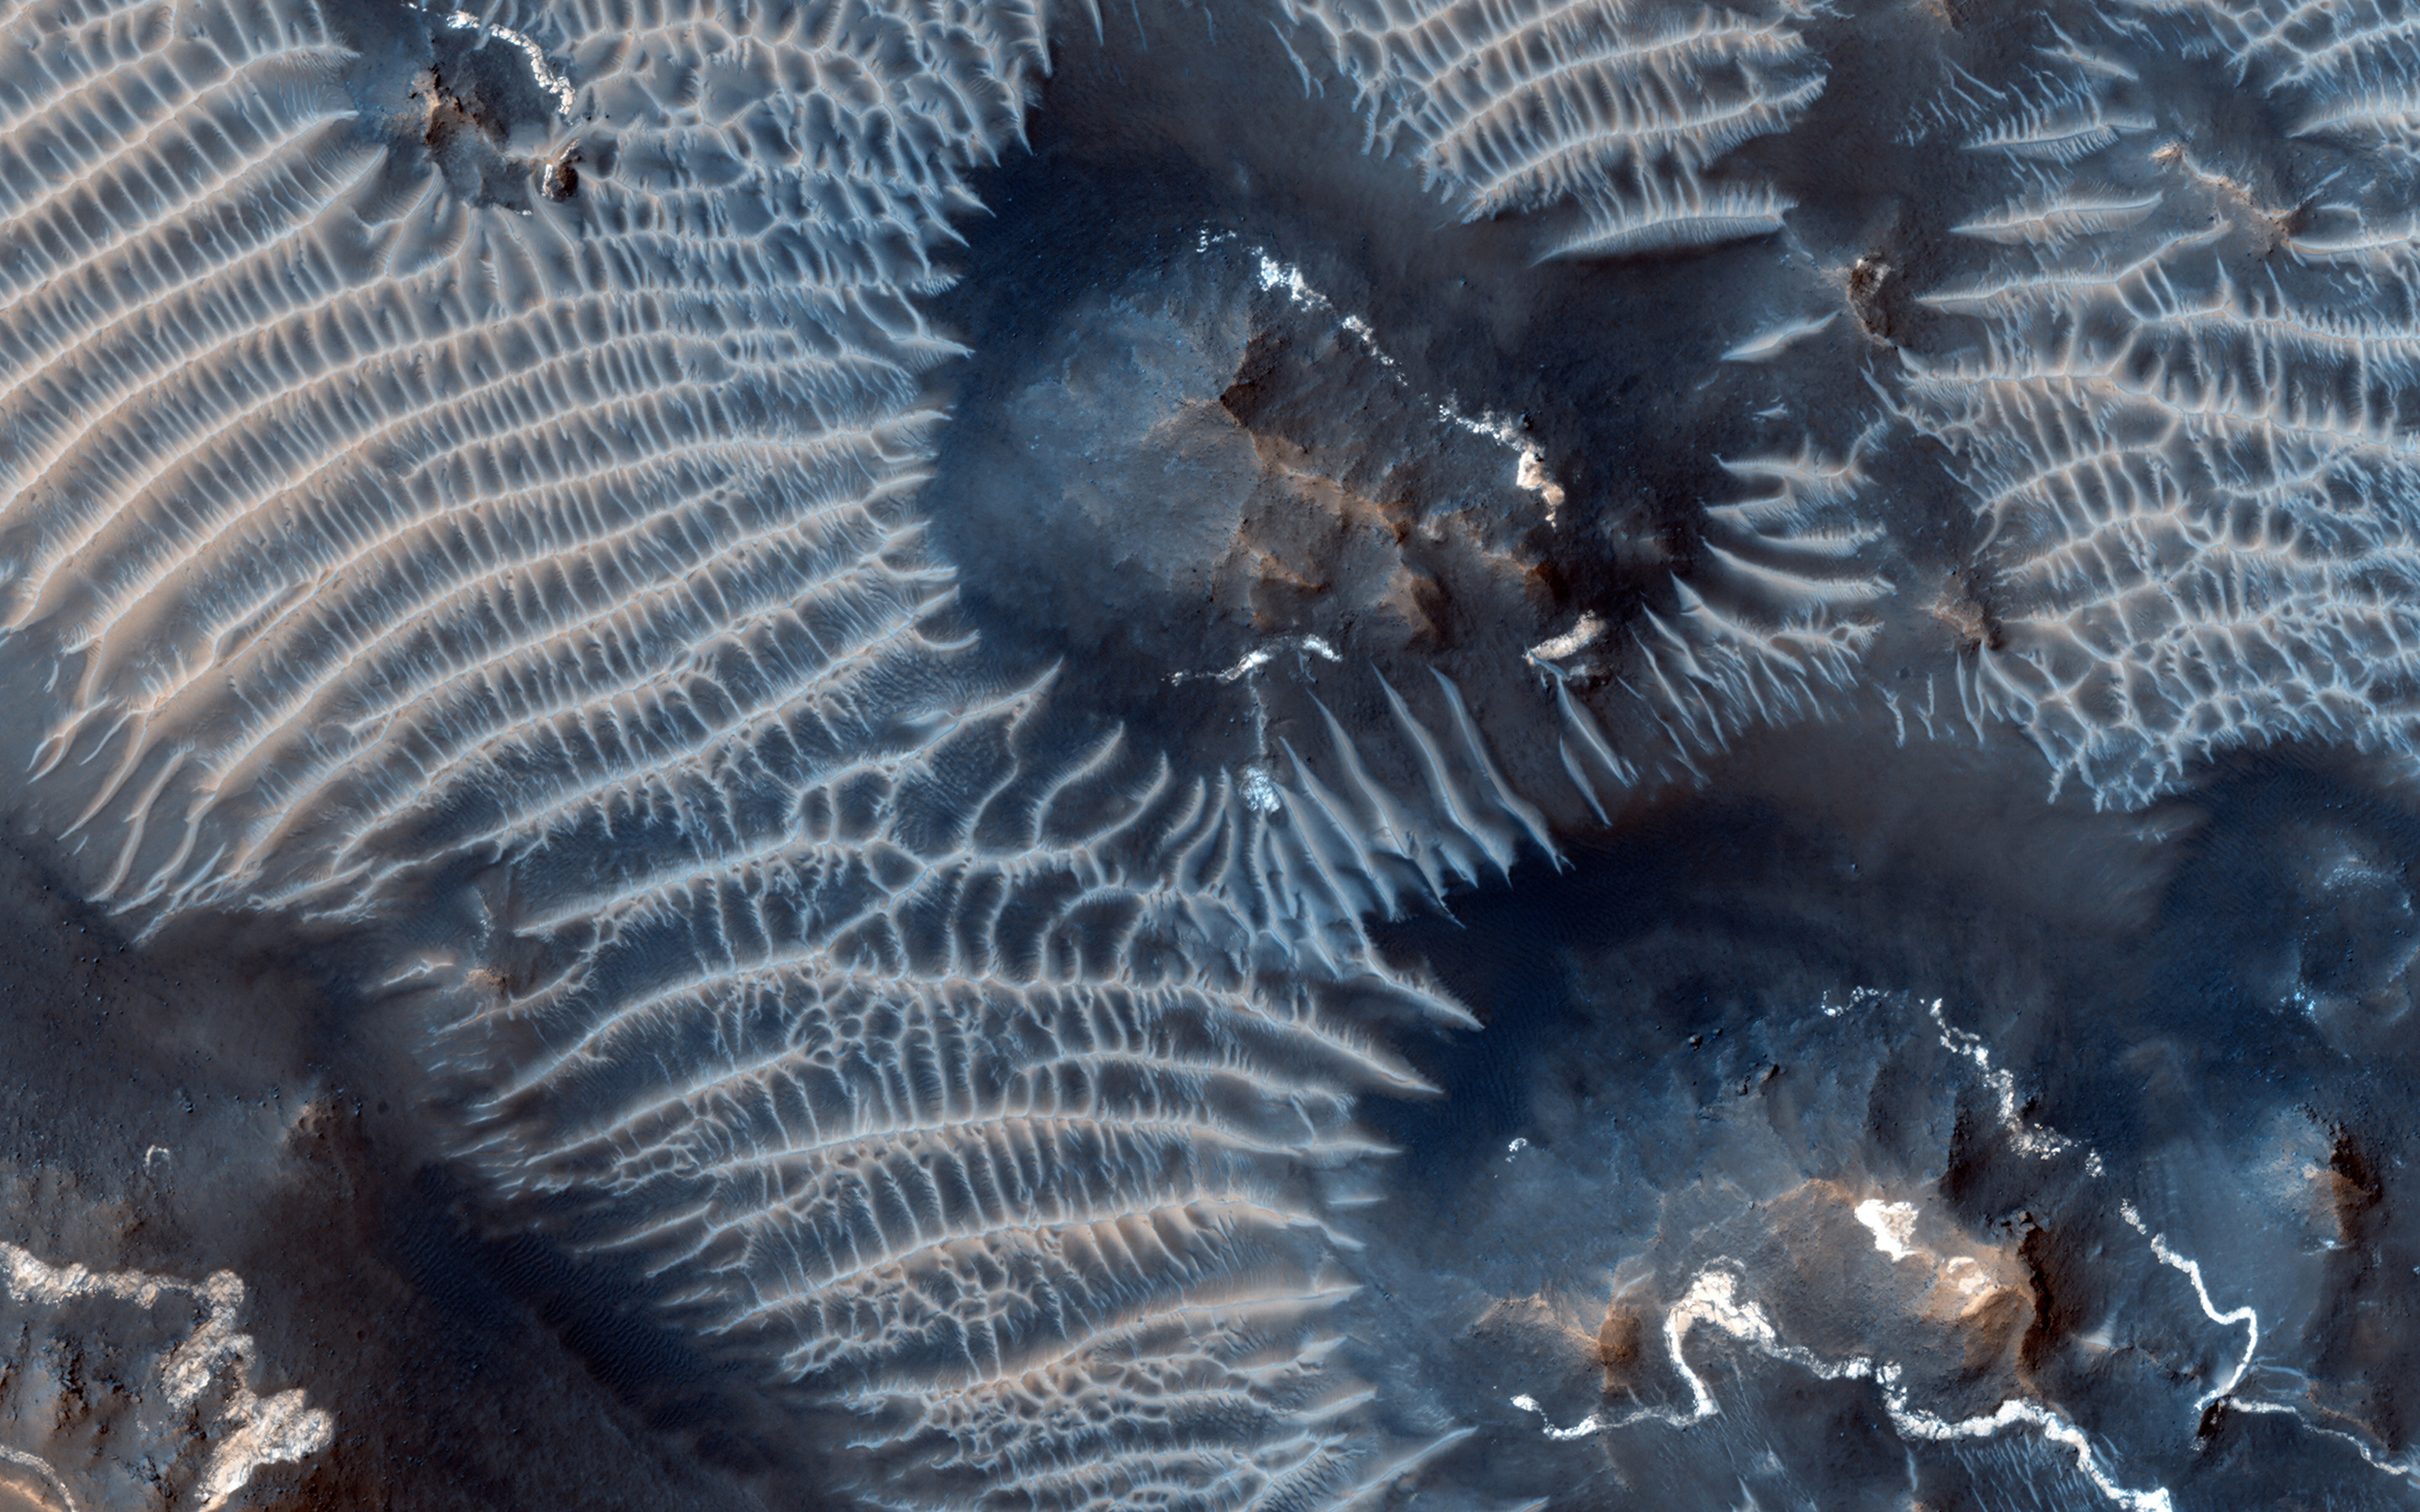 mars-windblown-sediment-esp_033262_1725